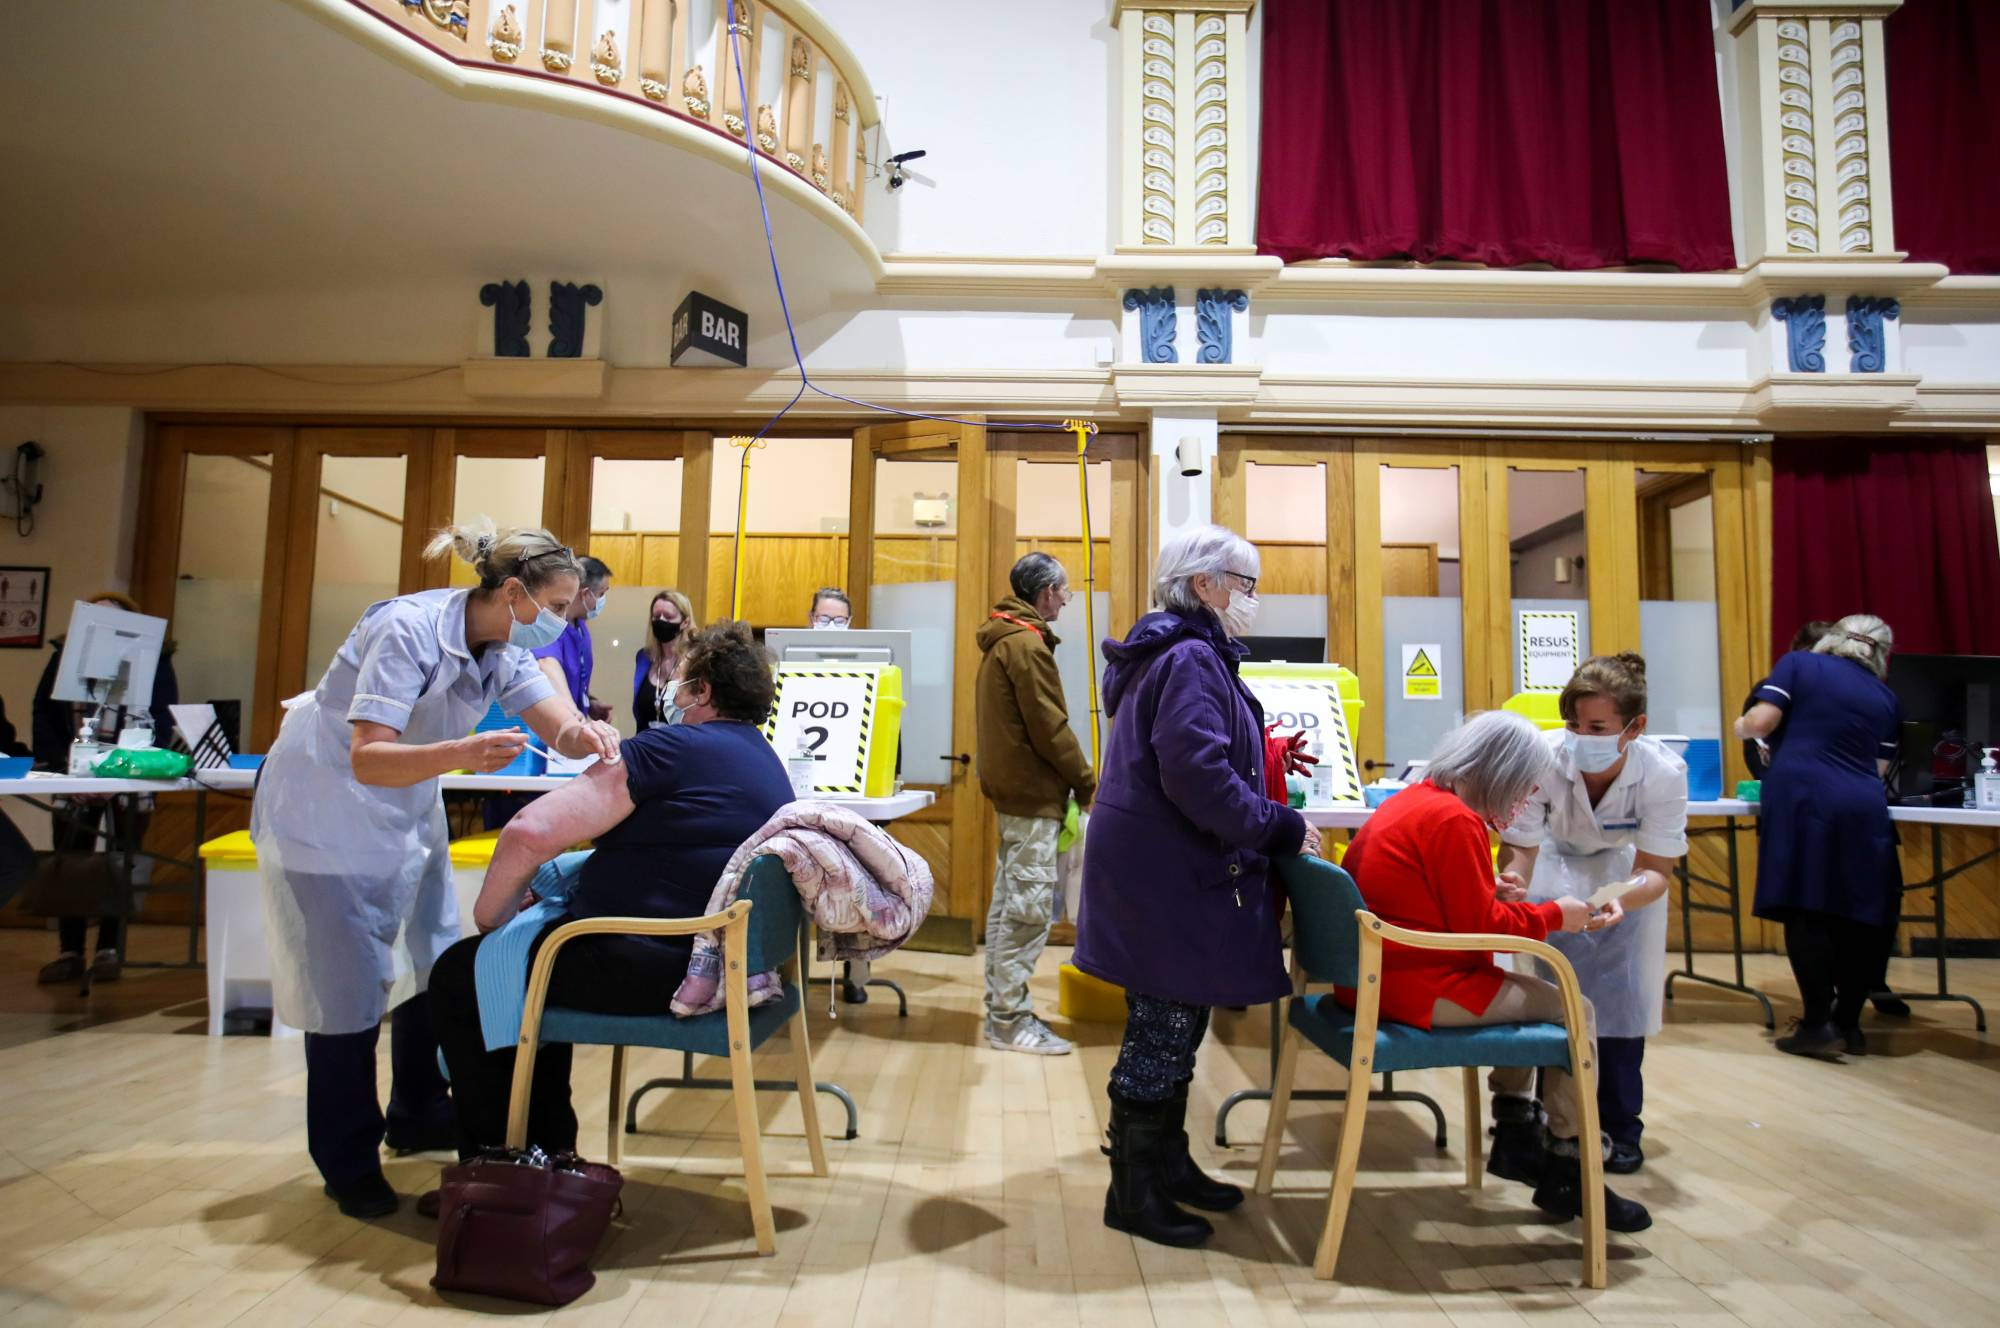 People receive COVID-19 vaccines in Chesterfield, England, on Wednesday. | REUTERS